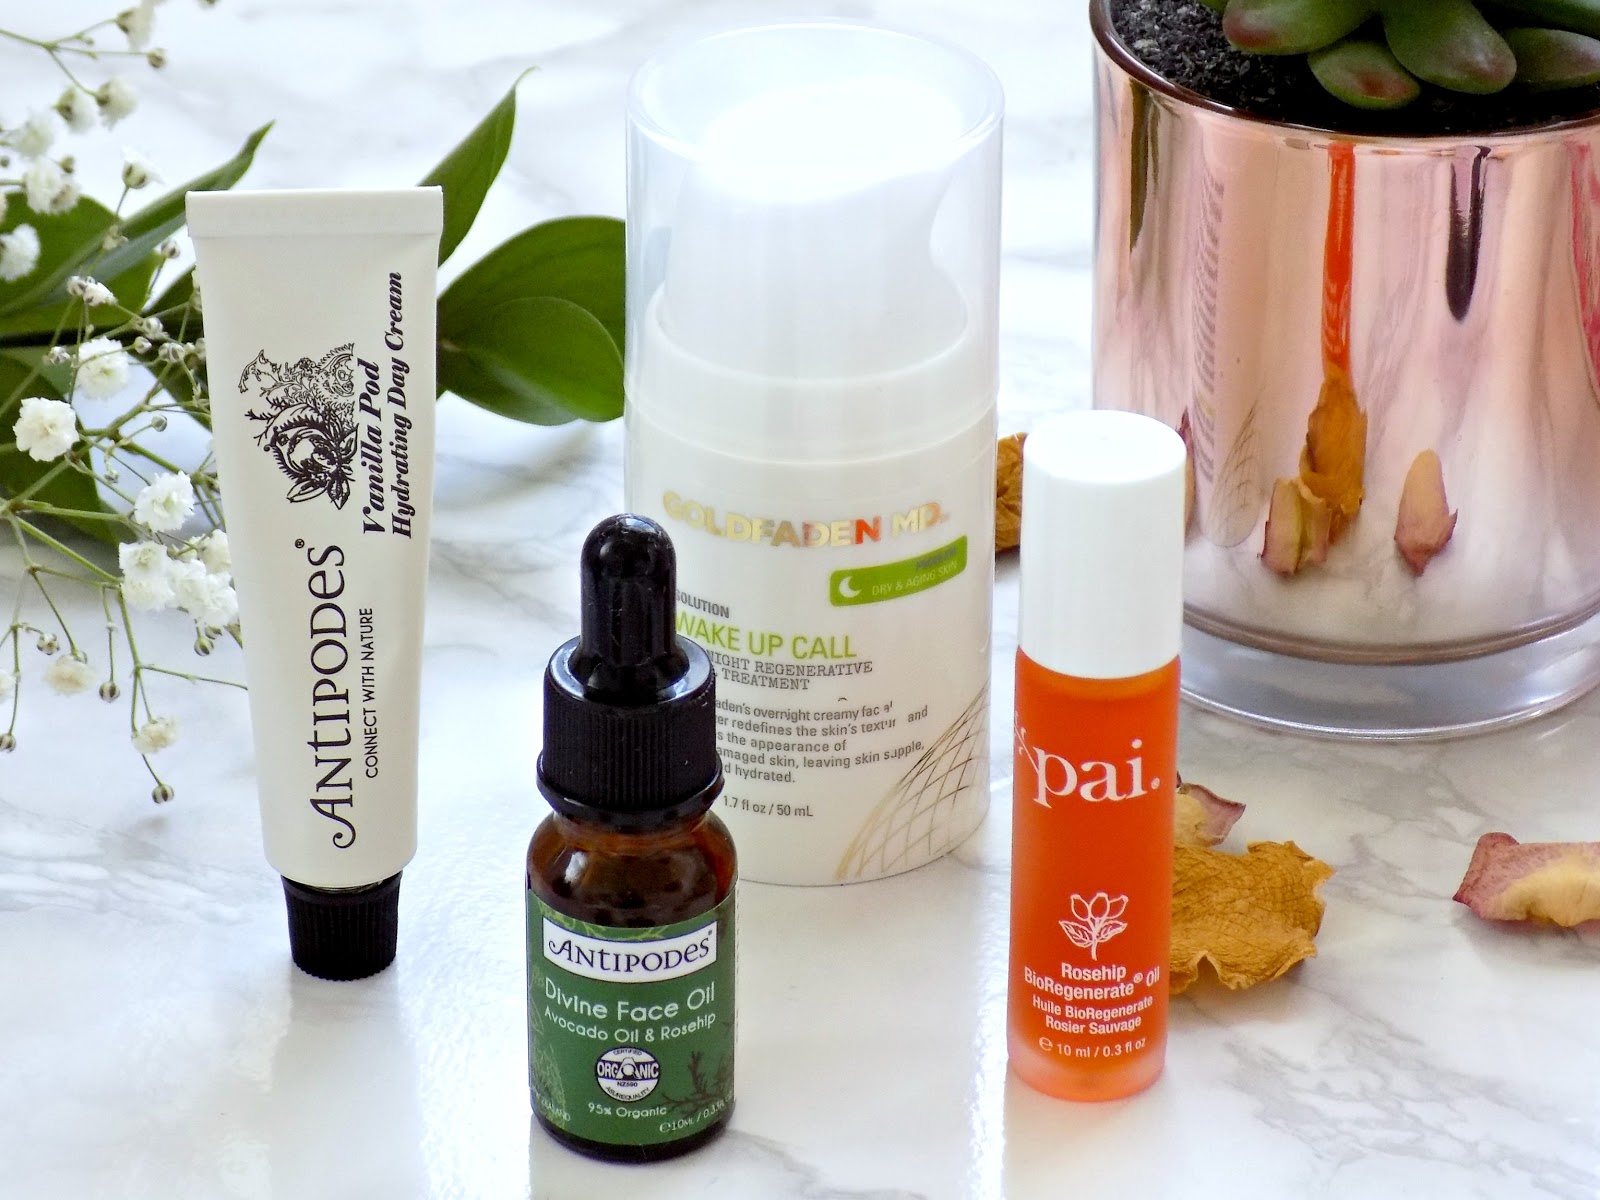 Hydrators, facial oils, Antipodes Divine Face Oil, Pai Rosehip Oil, GoldfadenMD Wakeup Call